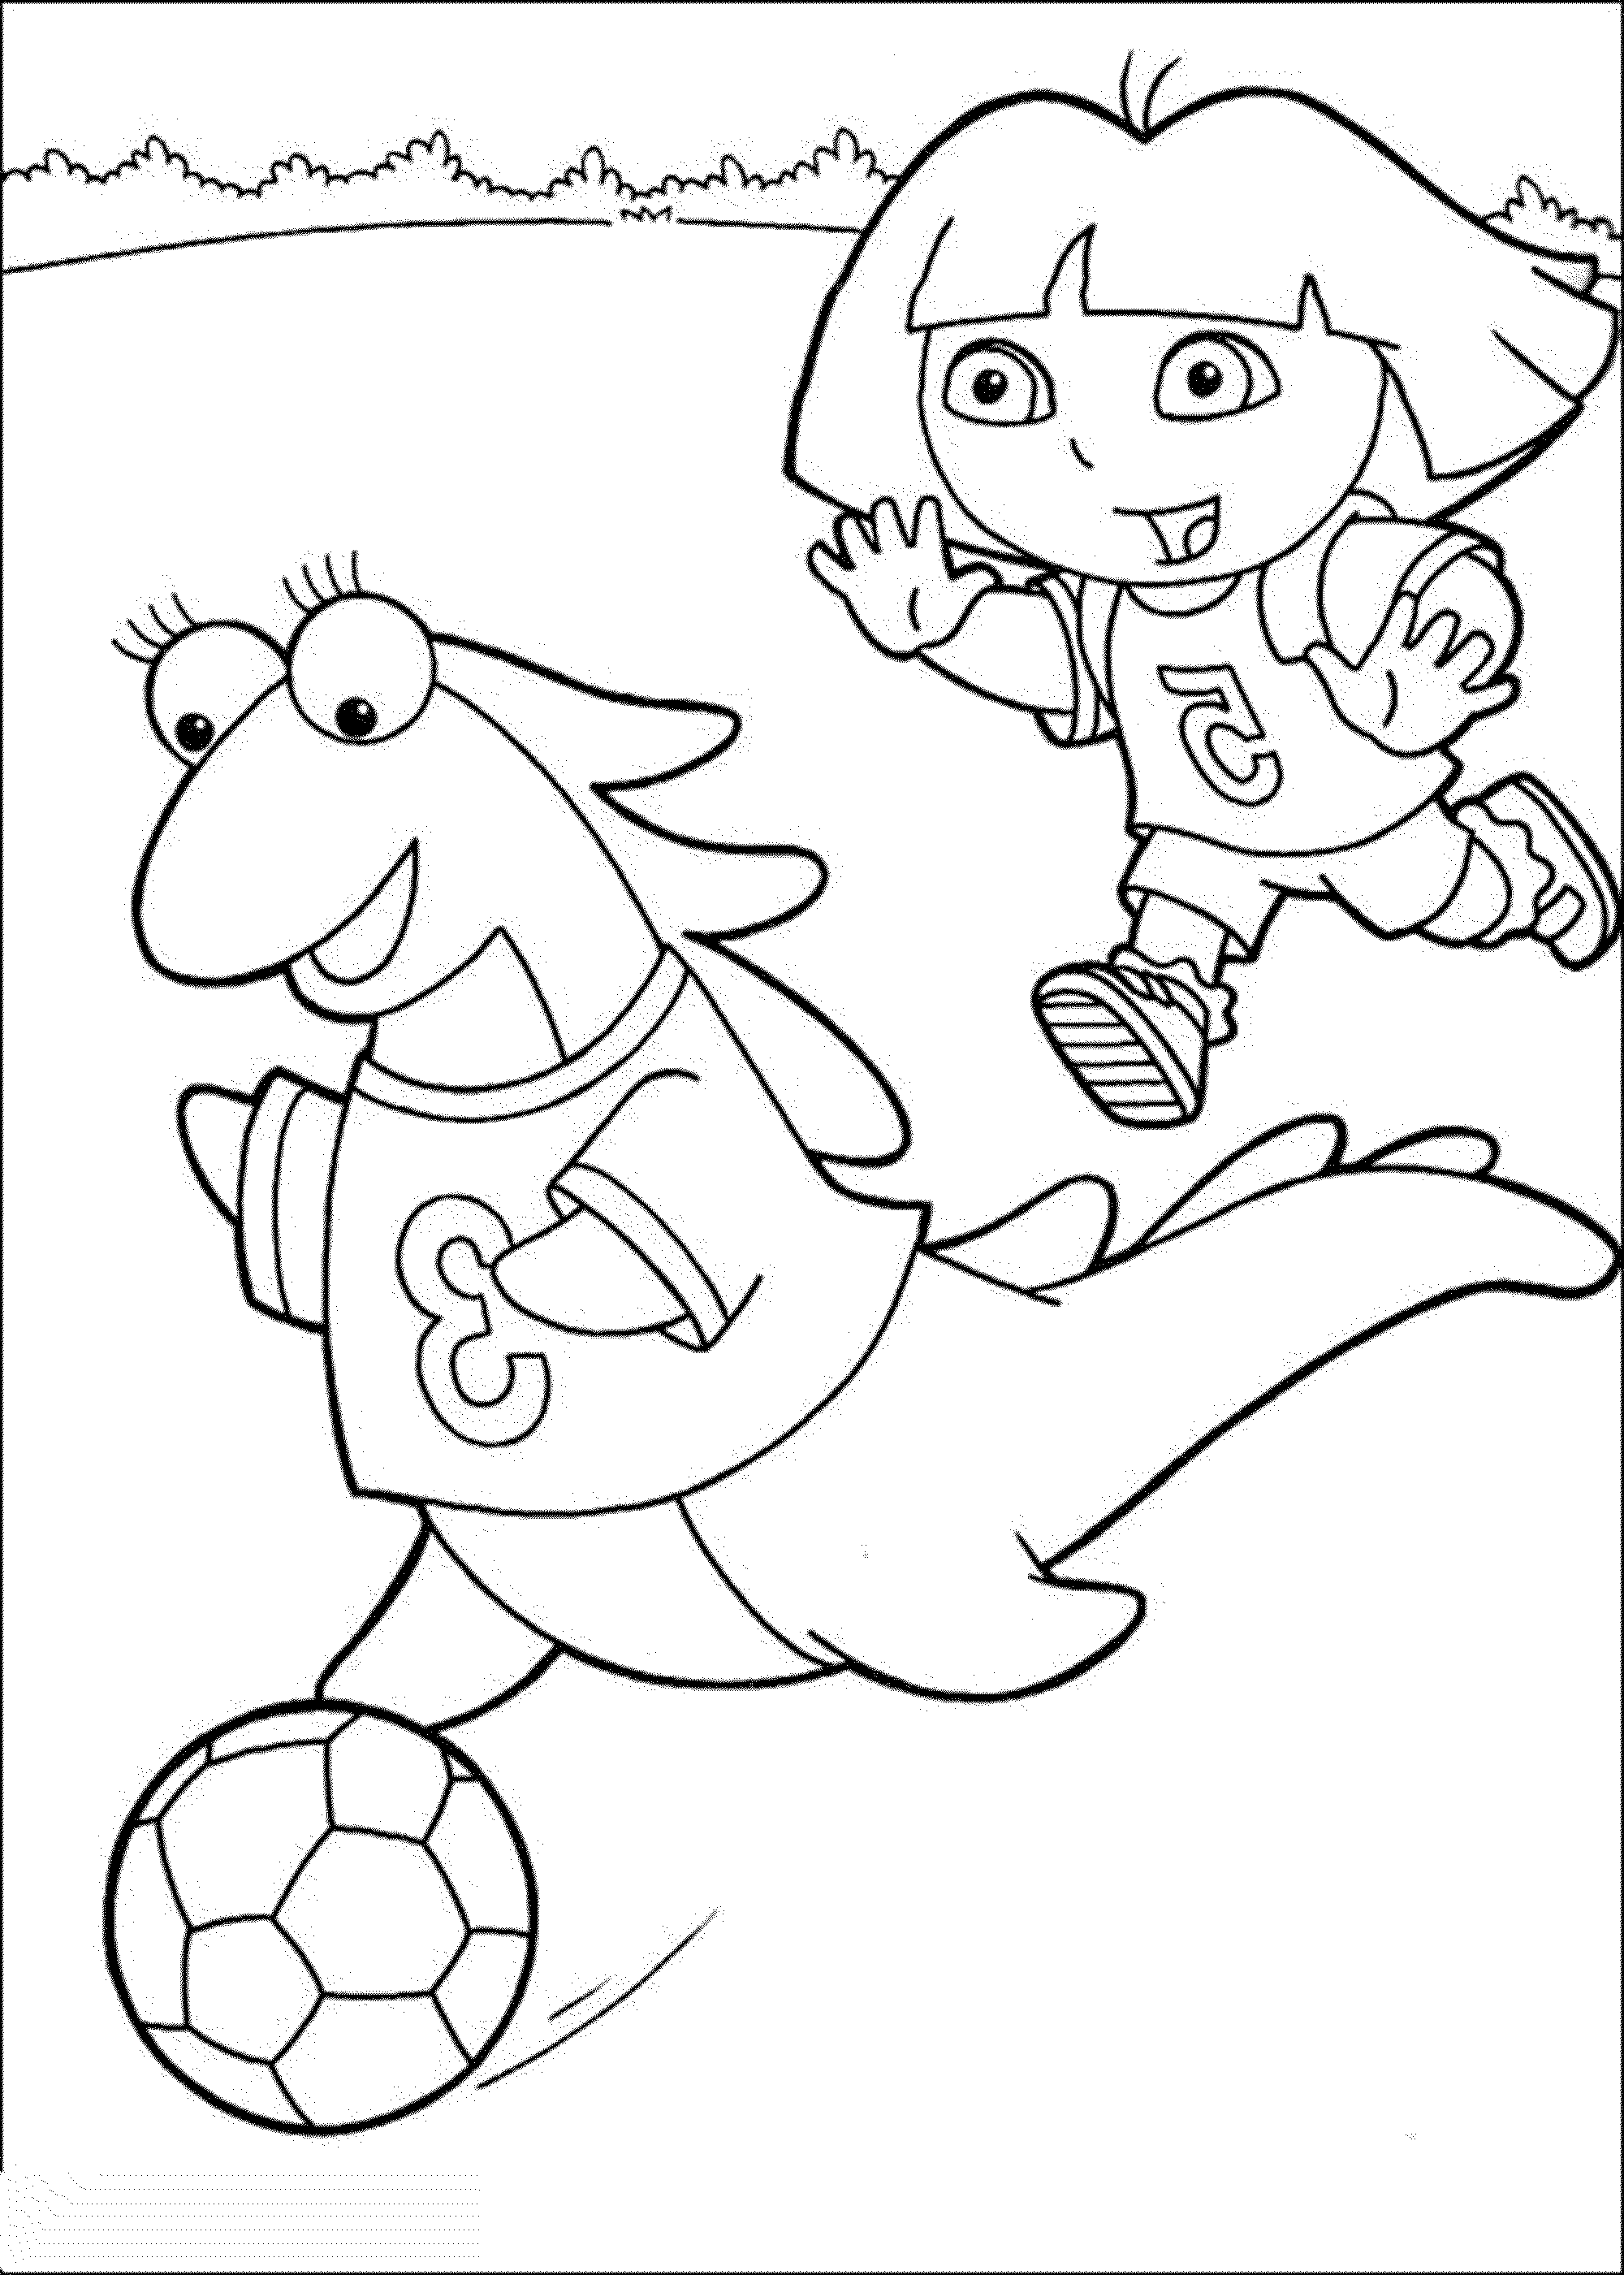 dora coloring pictures dora coloring pages diego coloring pages dora pictures coloring